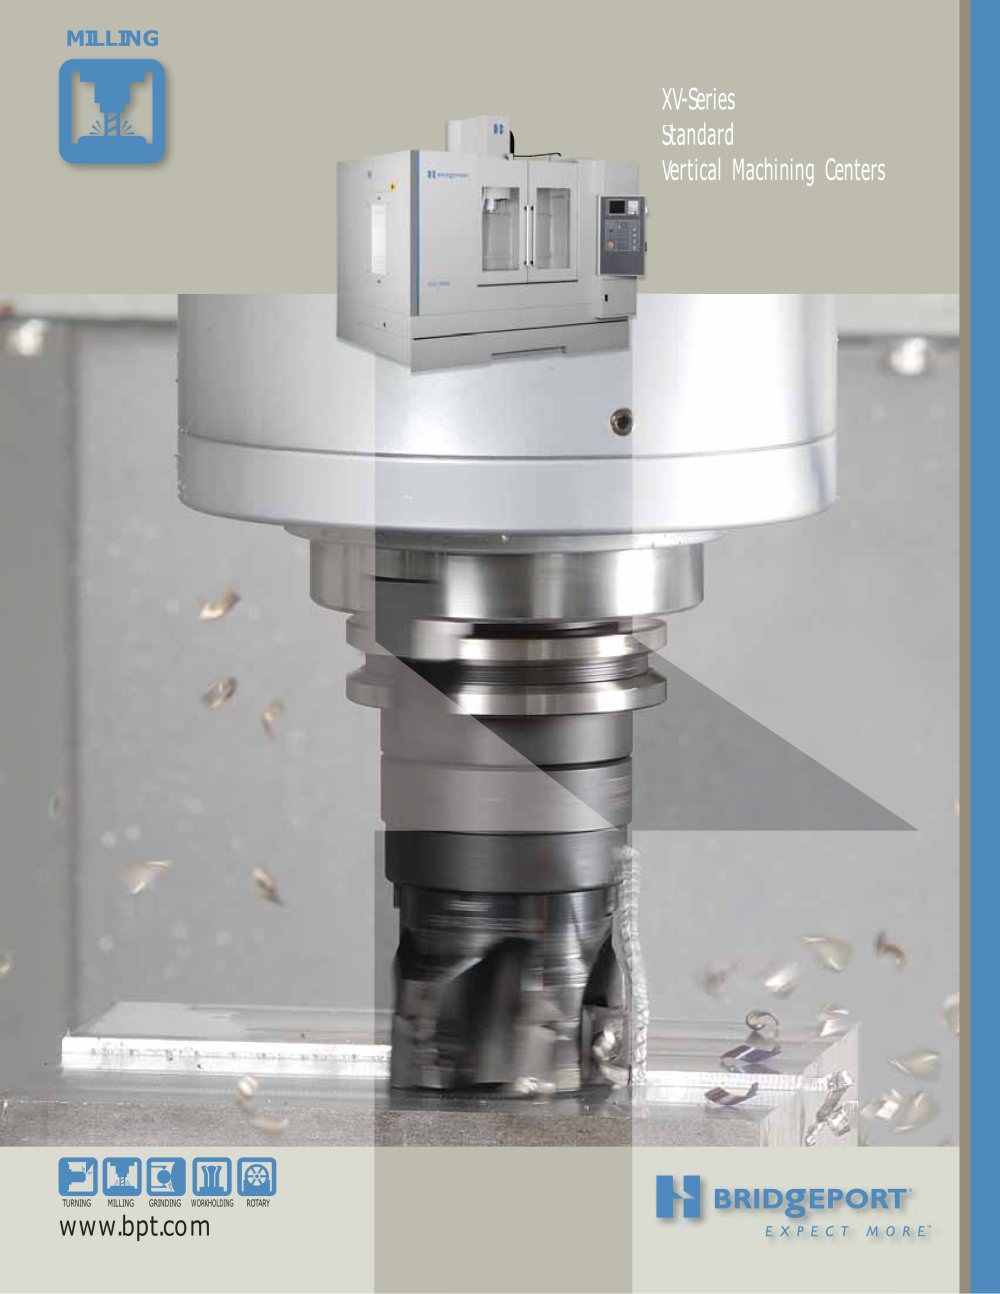 Bridgeport xv series vertical machining 1 8 pages